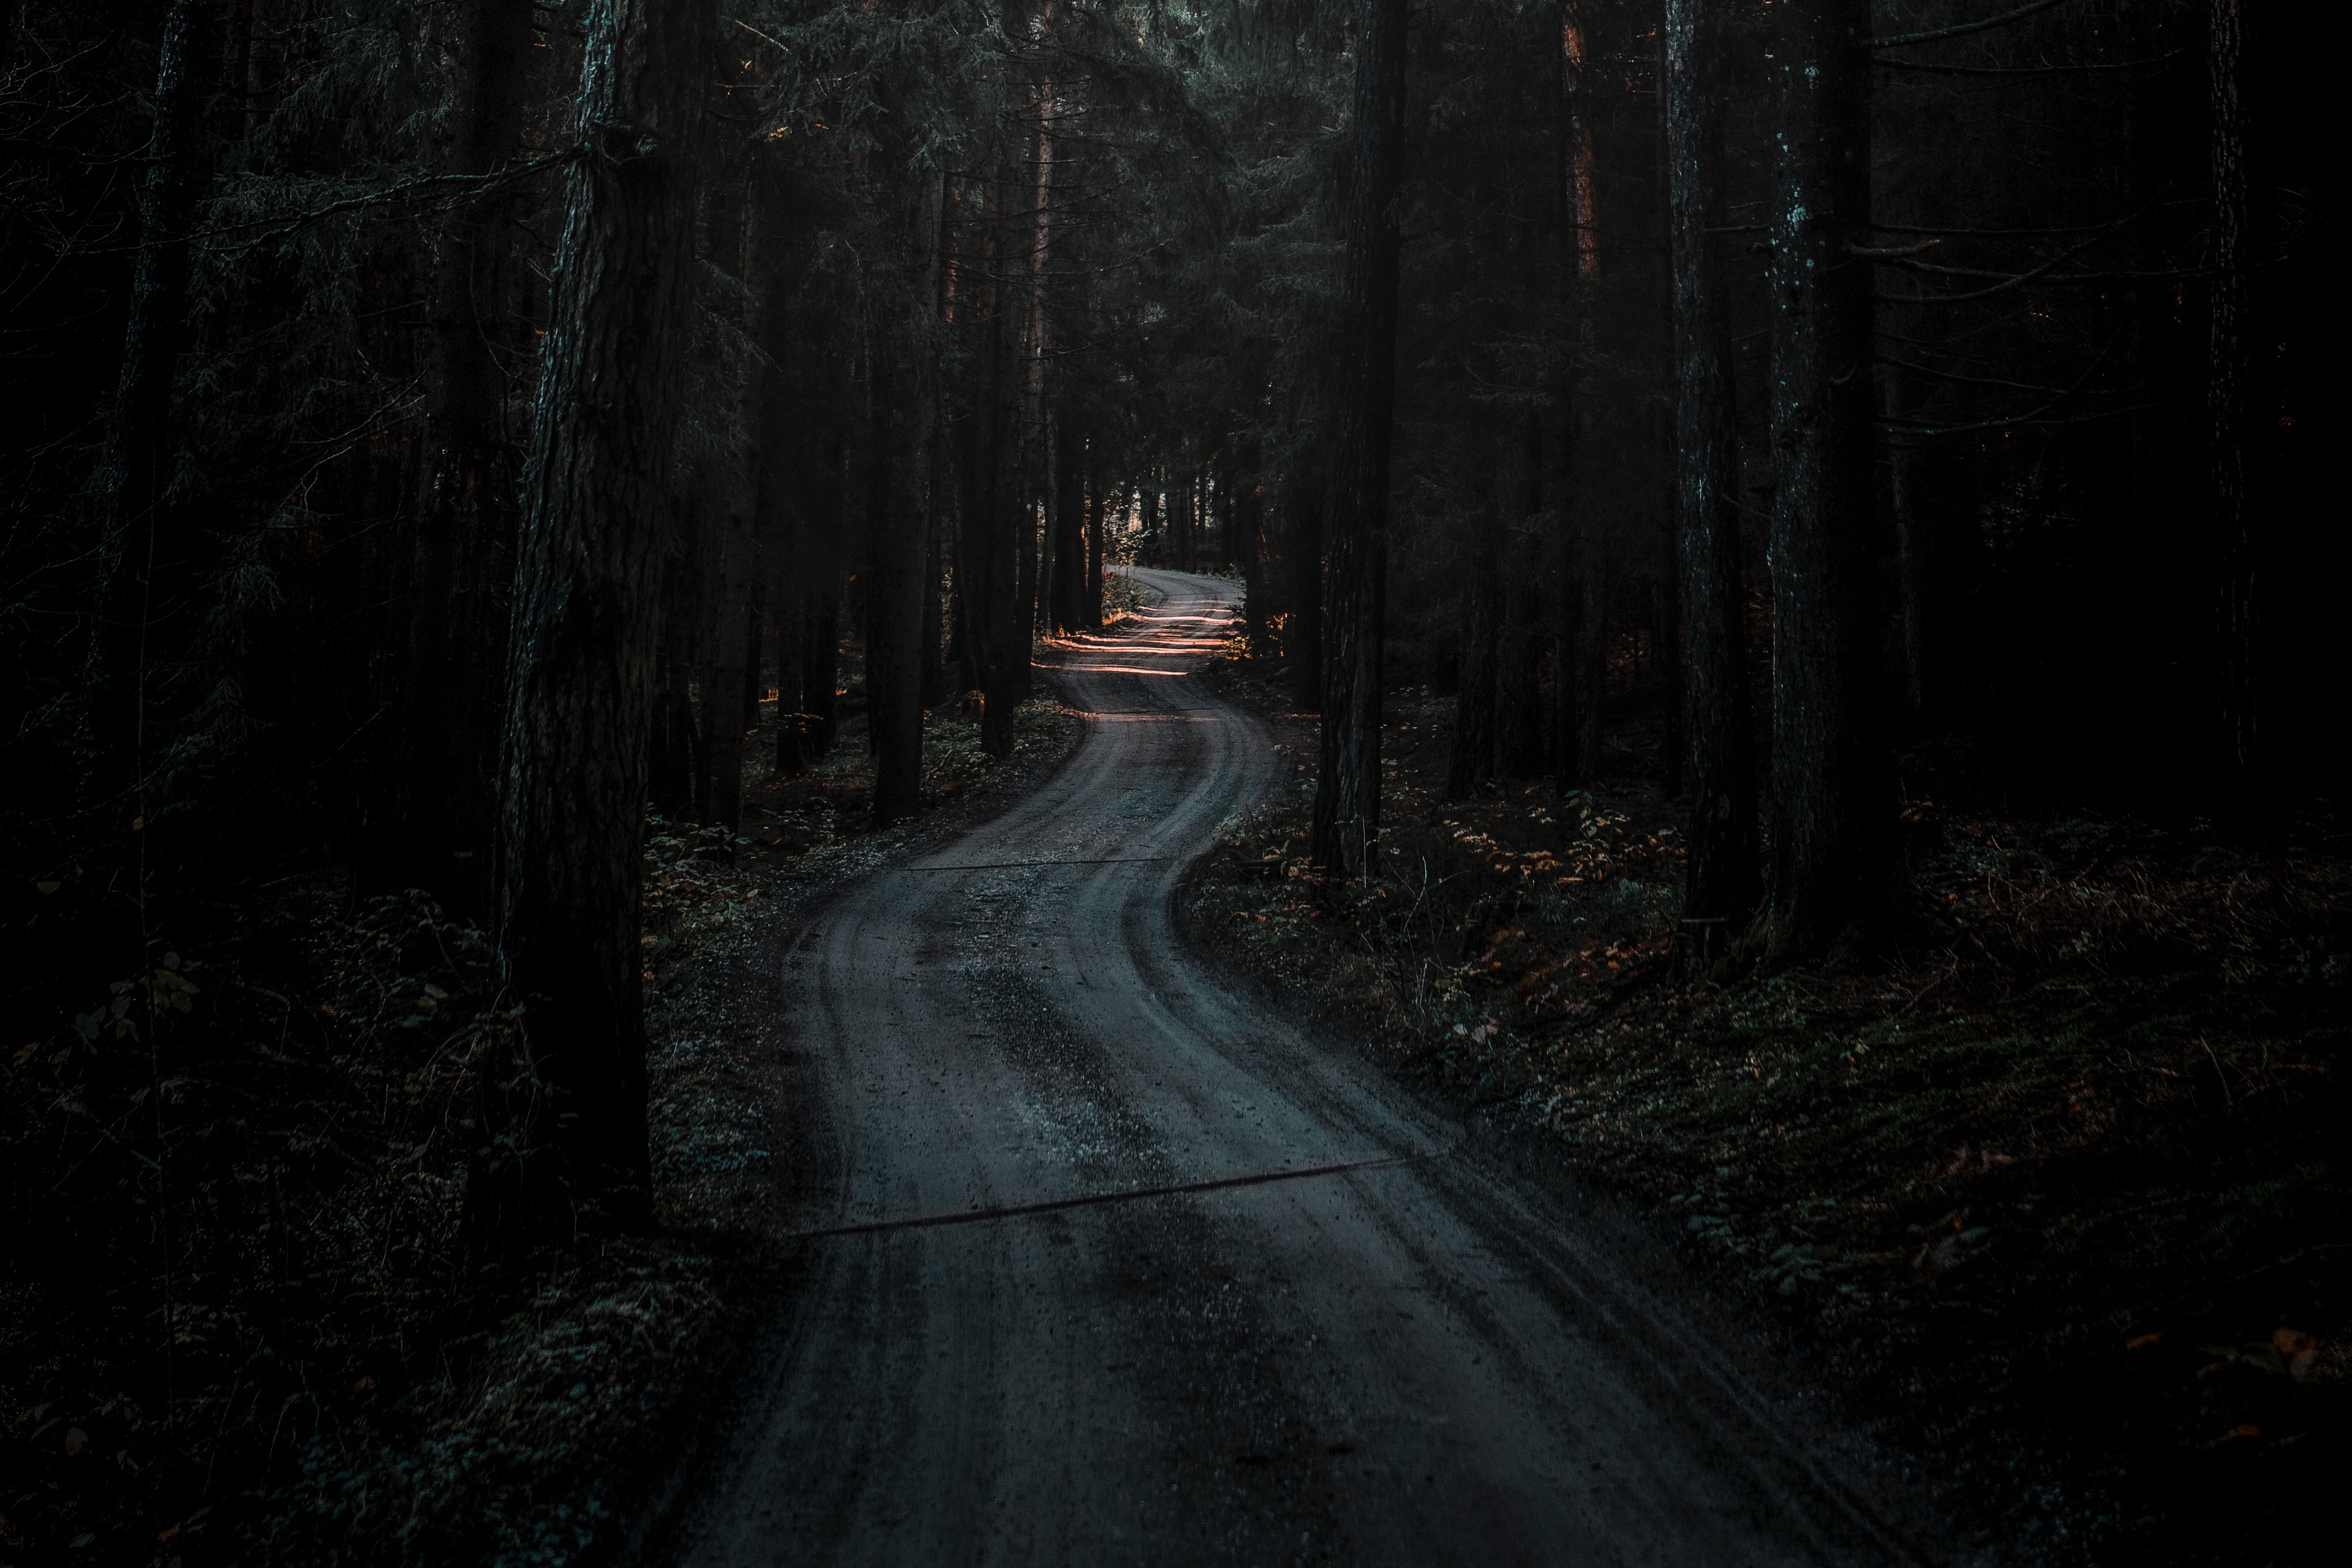 51063 download wallpaper Dark, Nature, Road, Forest, Winding, Sinuous screensavers and pictures for free